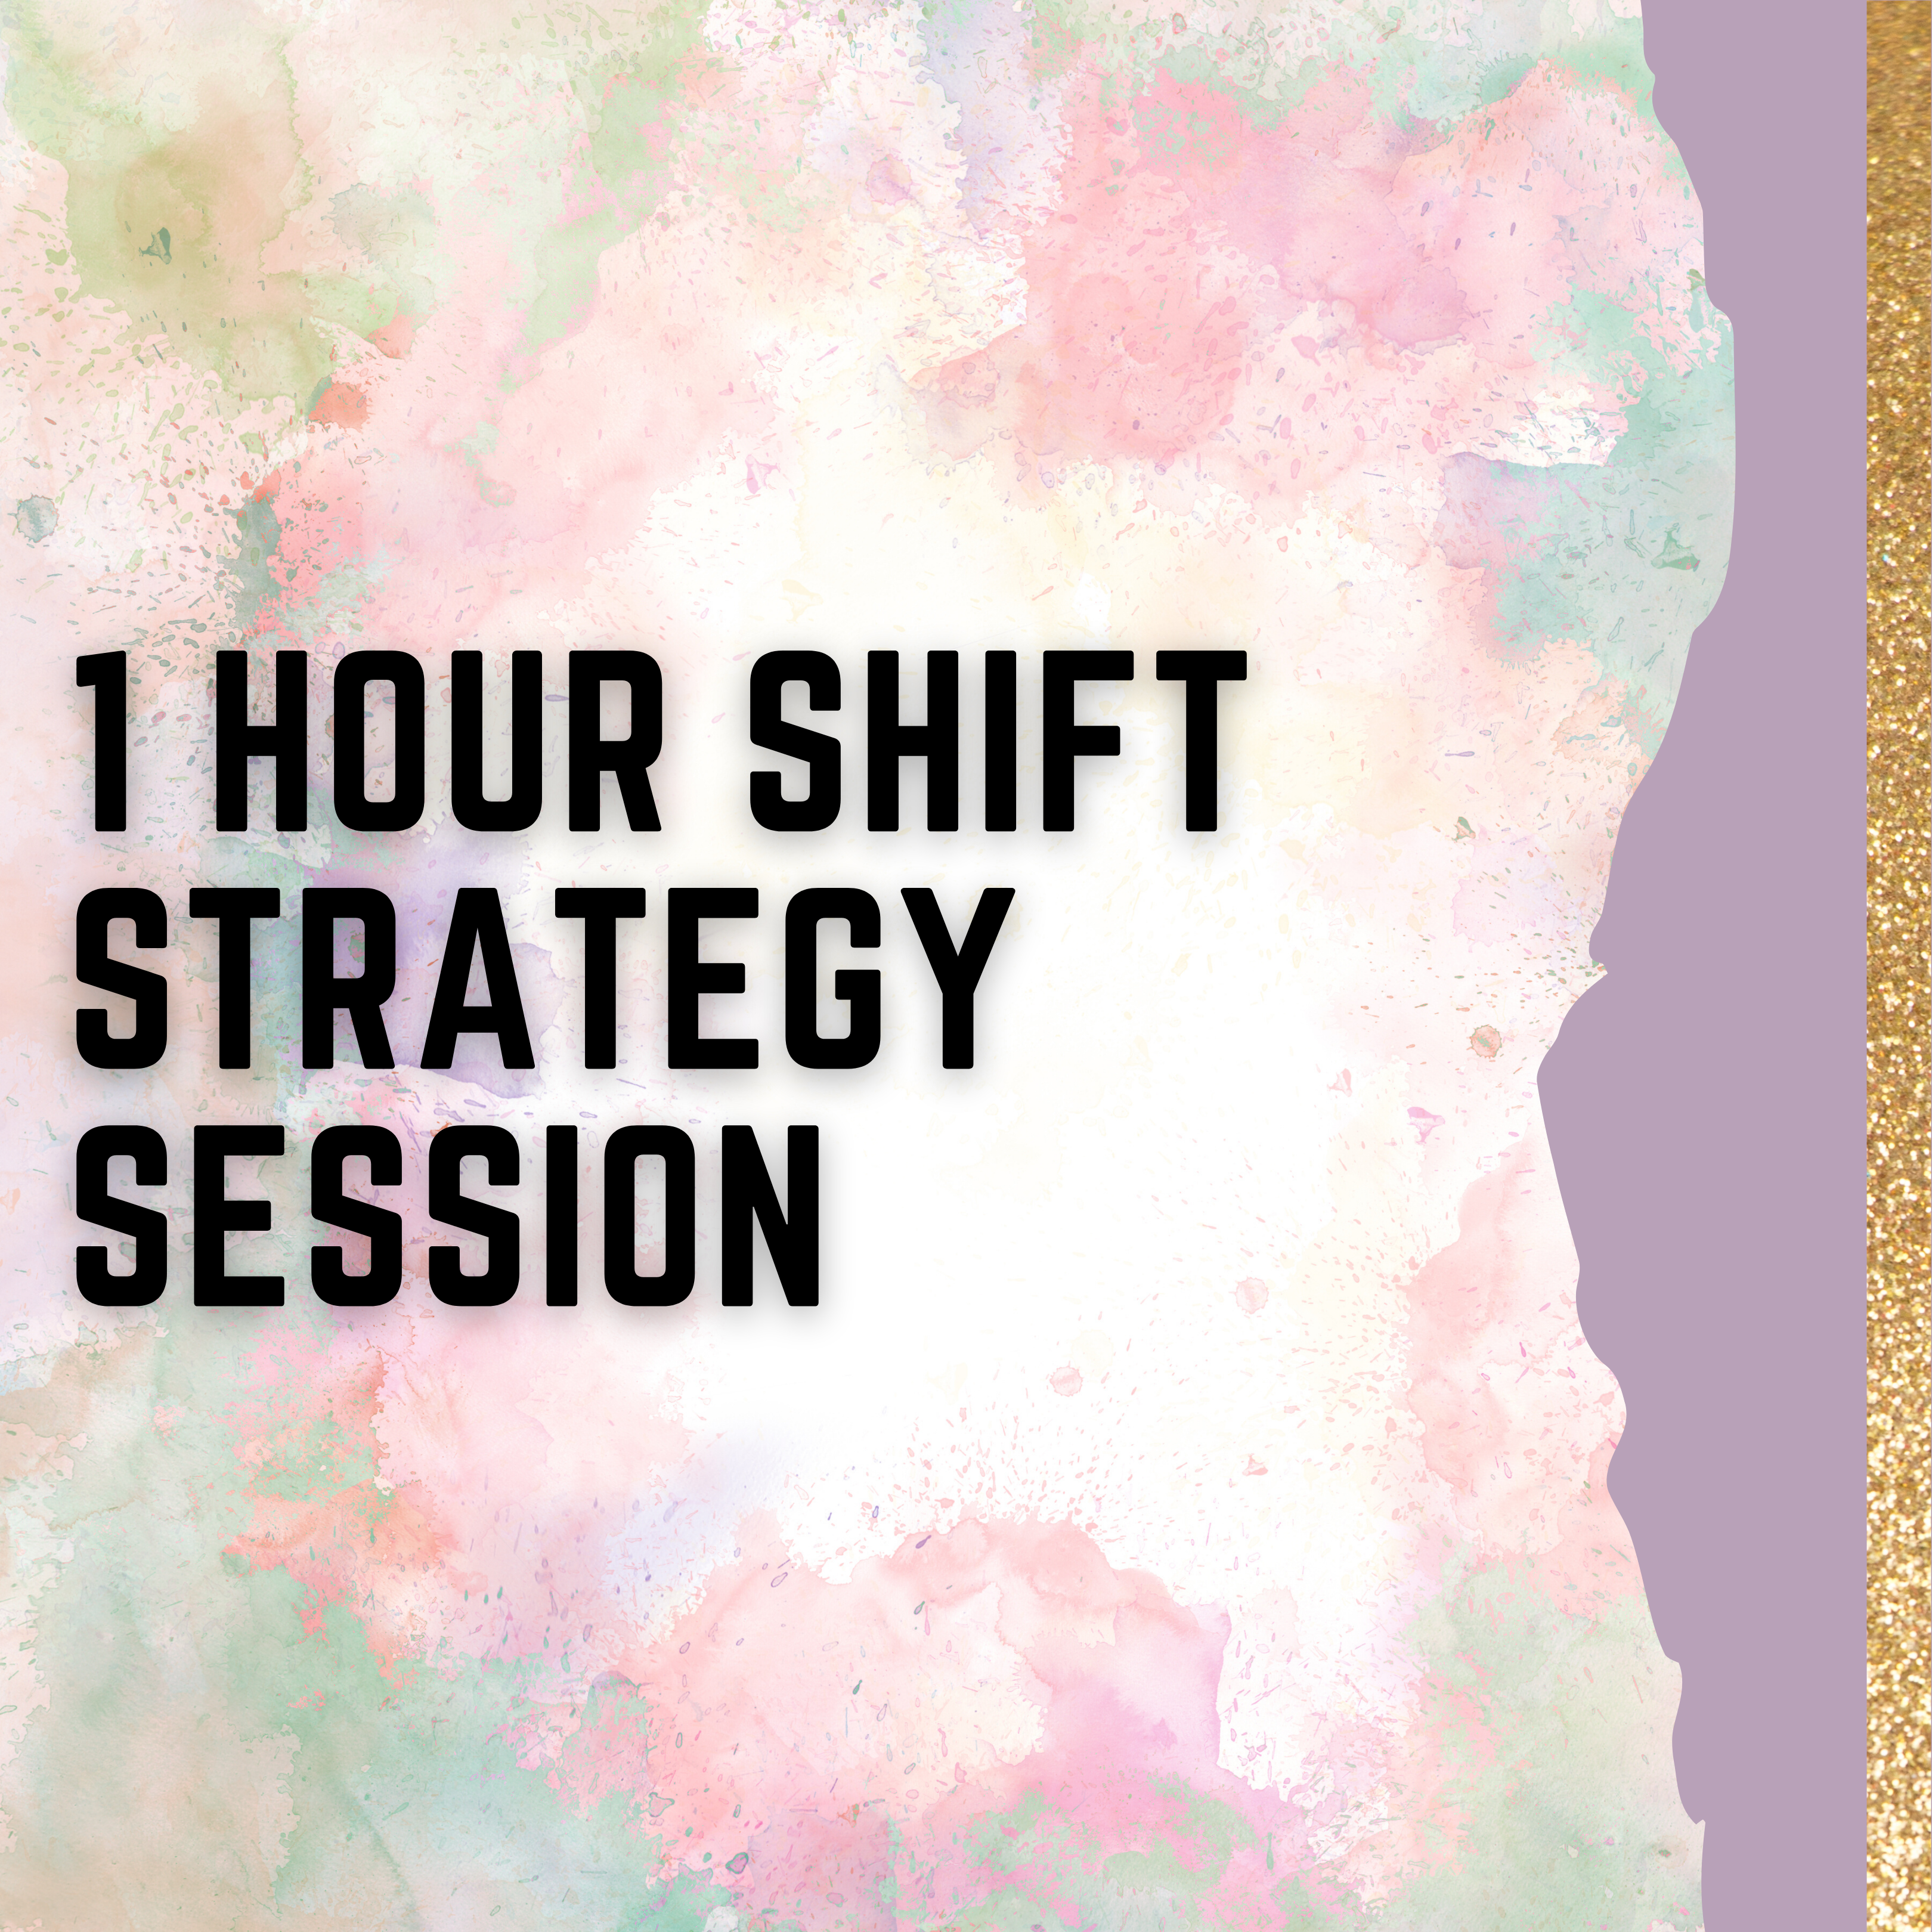 1 HOUR SHiFT STRATEGY SESSION